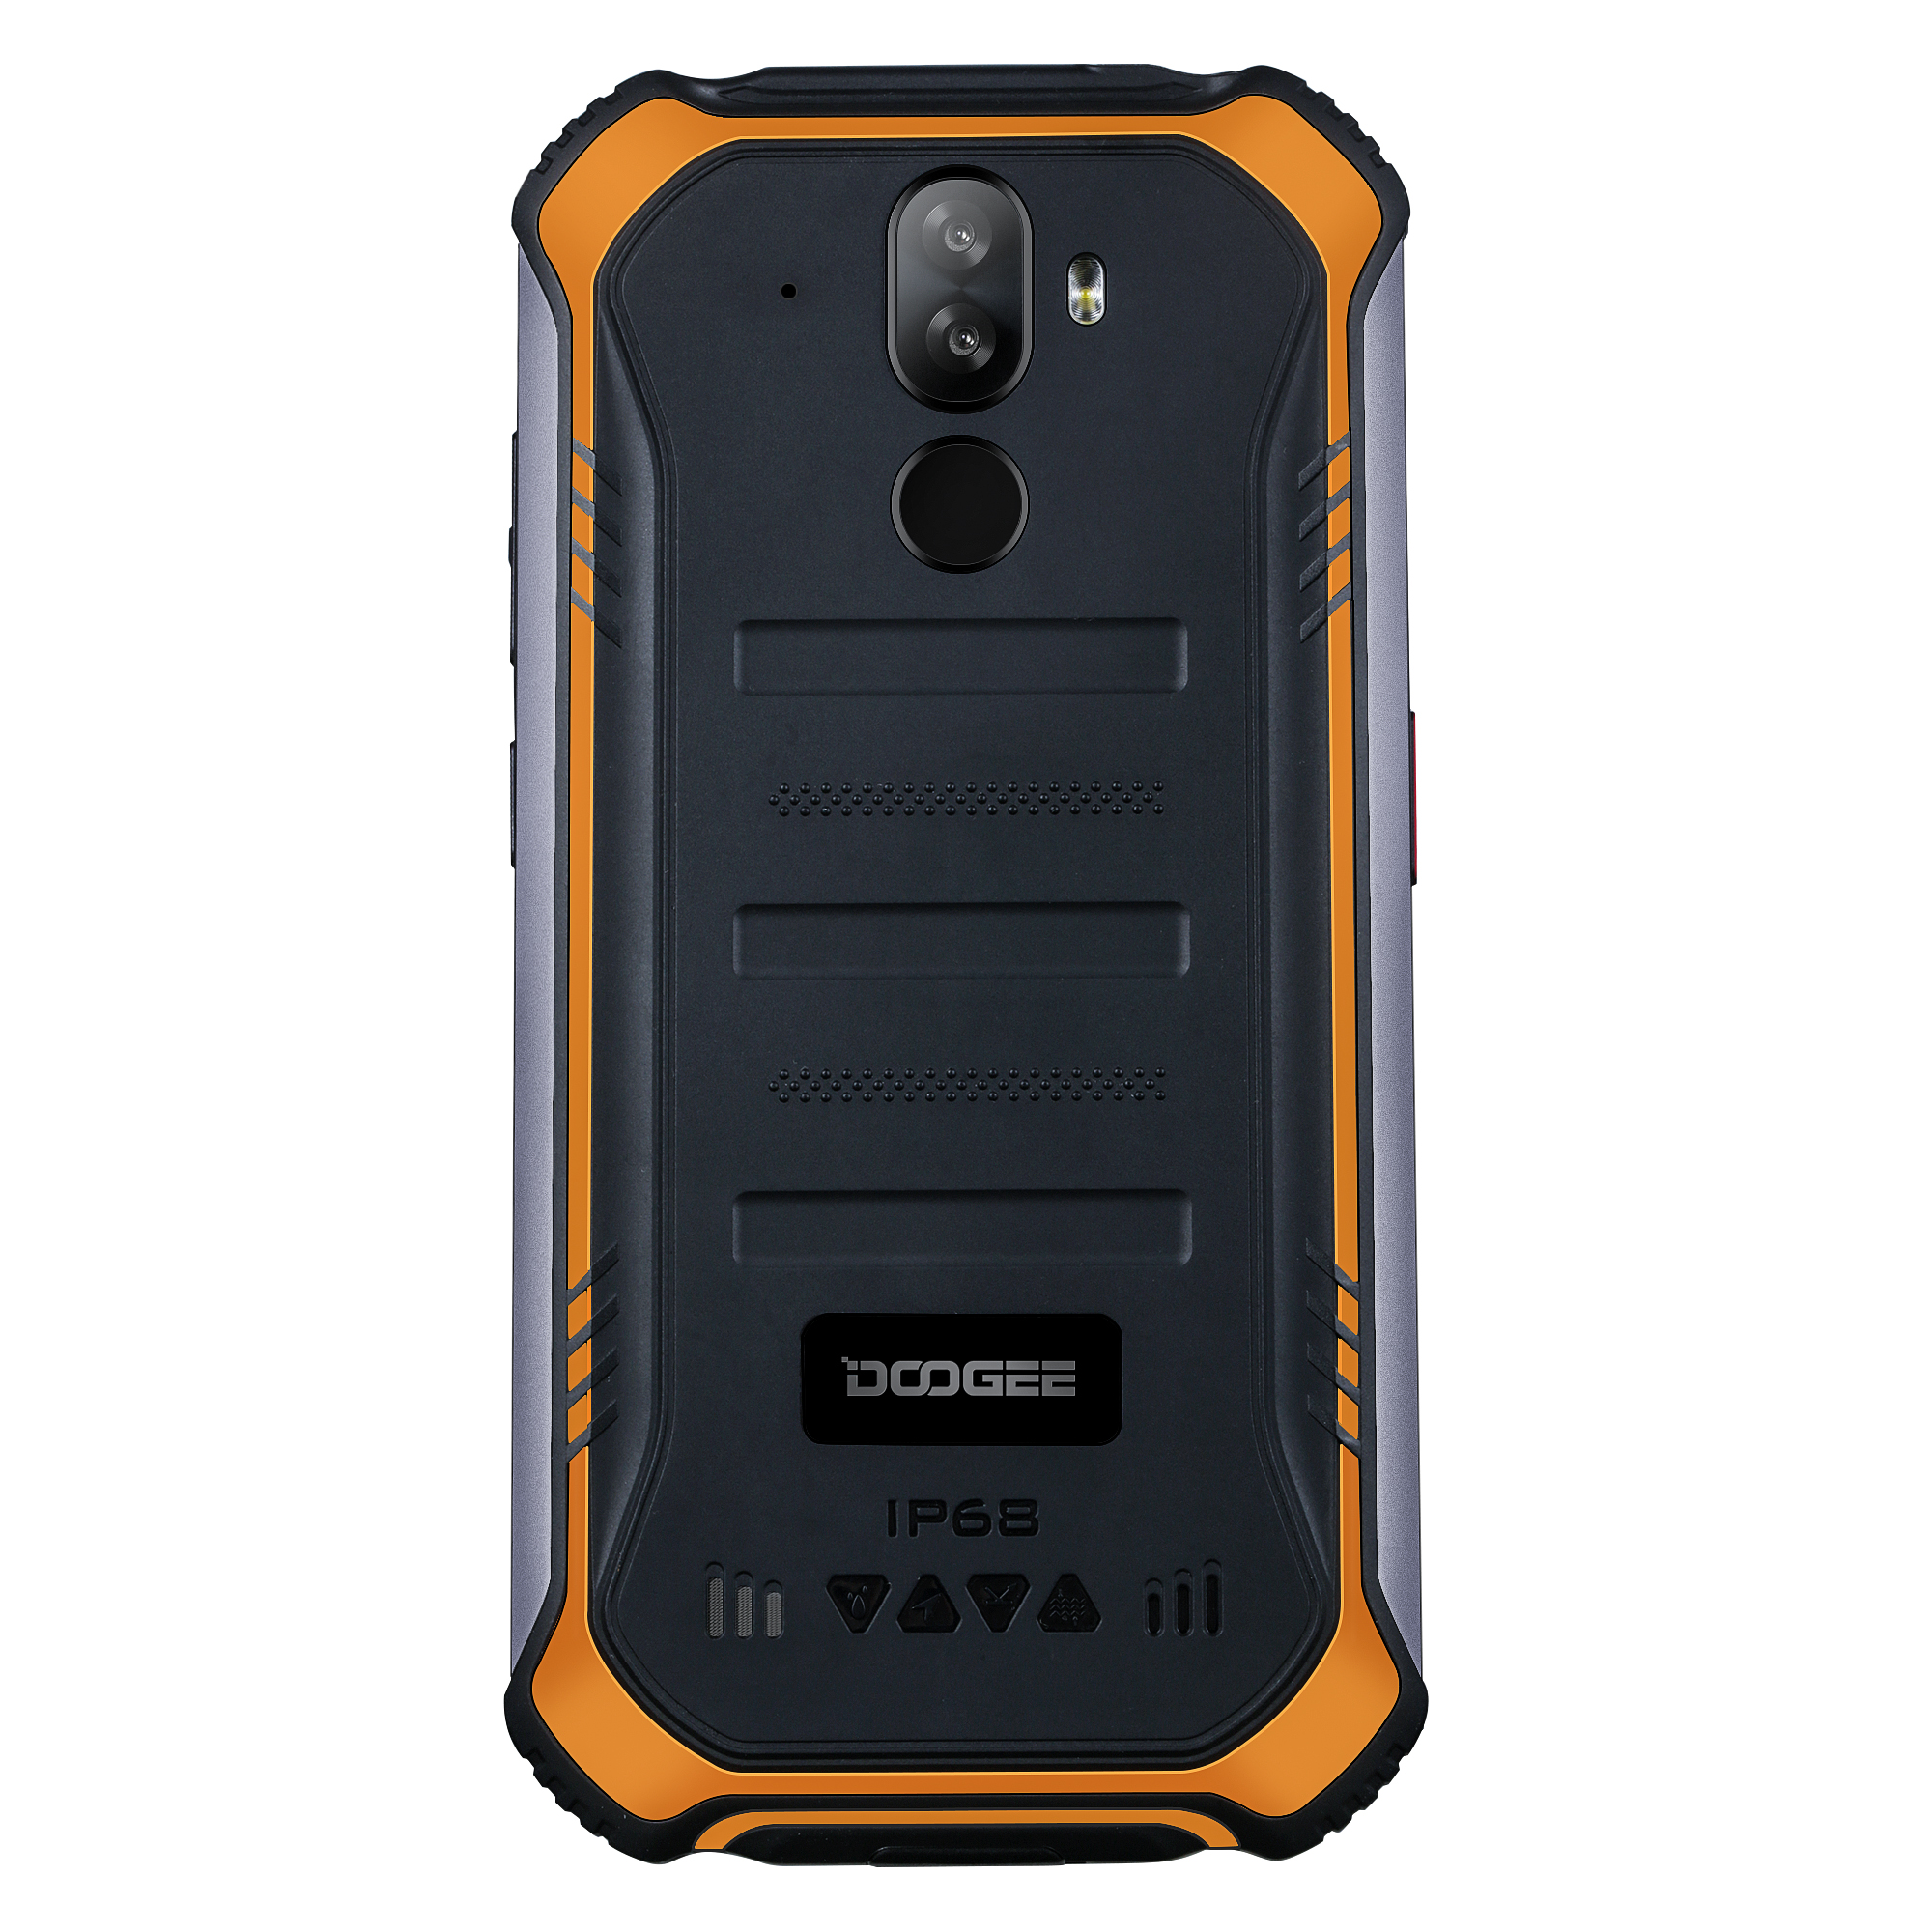 Image 3 - DOOGEE S40 S40 Lite IP68/IP69K Rugged Mobile Phone 5.5 Inch Android 9.0 Smartphone MT6739 Quad Core Cellphone 3GB 32GB 4650mAh-in Cellphones from Cellphones & Telecommunications